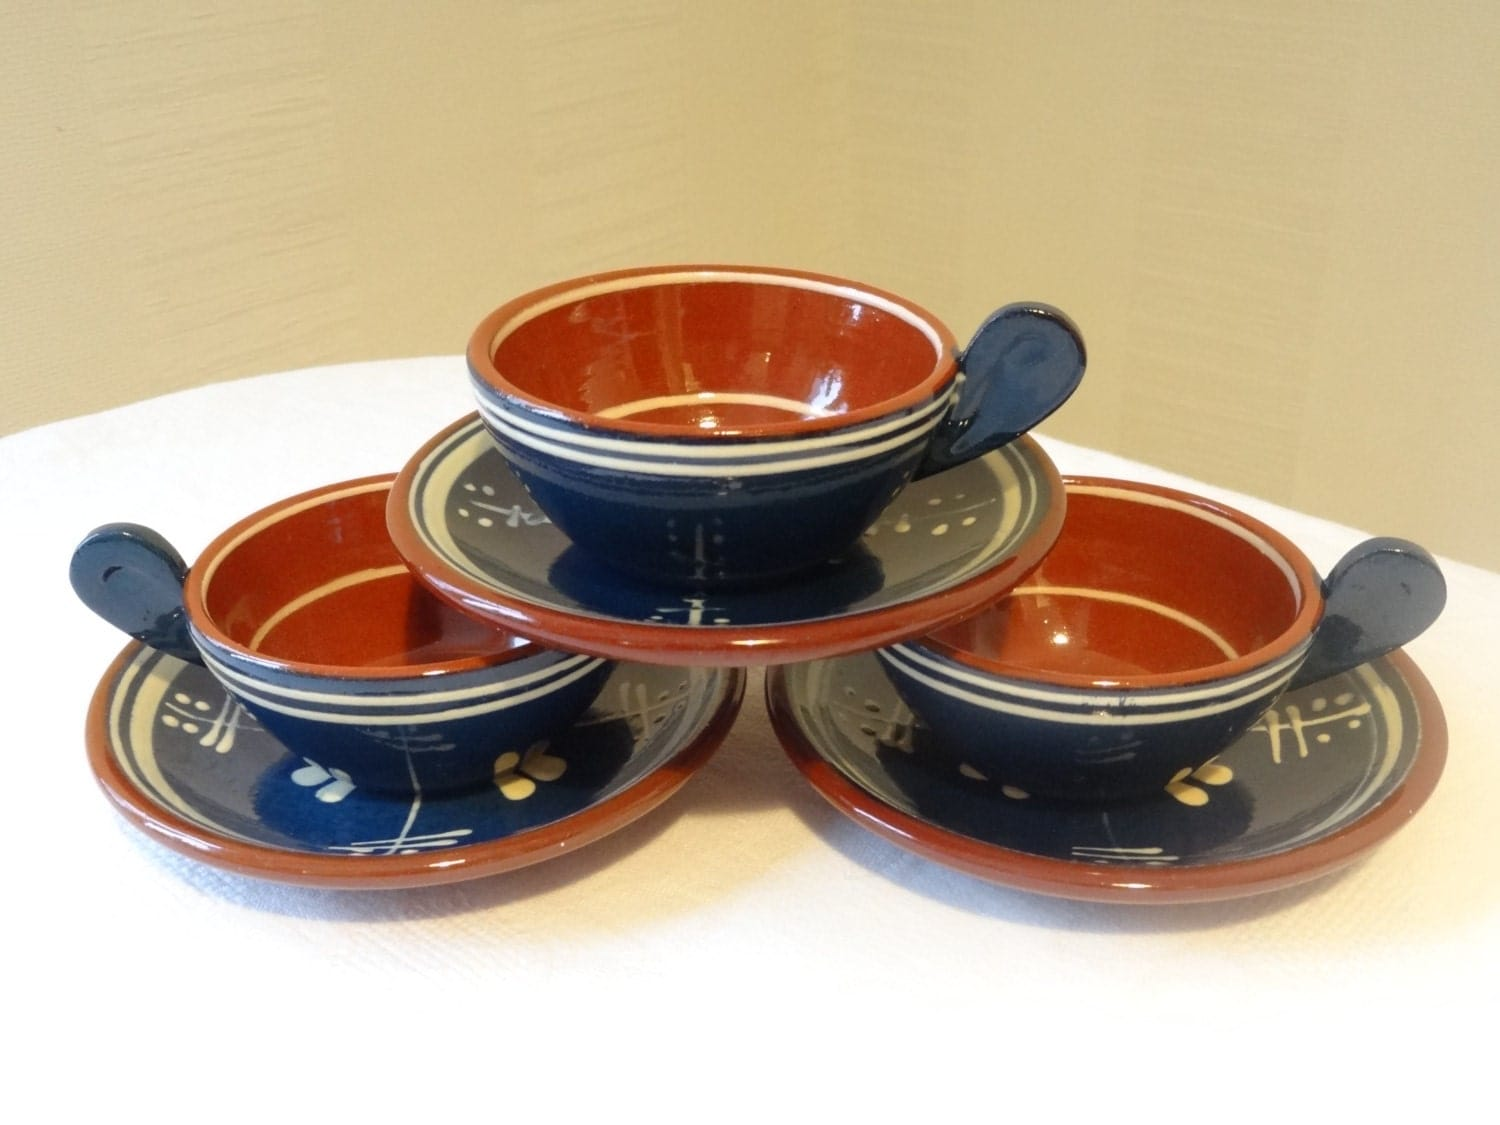 nittsj keramik set of 3 swedish vintage ceramics pottery tea